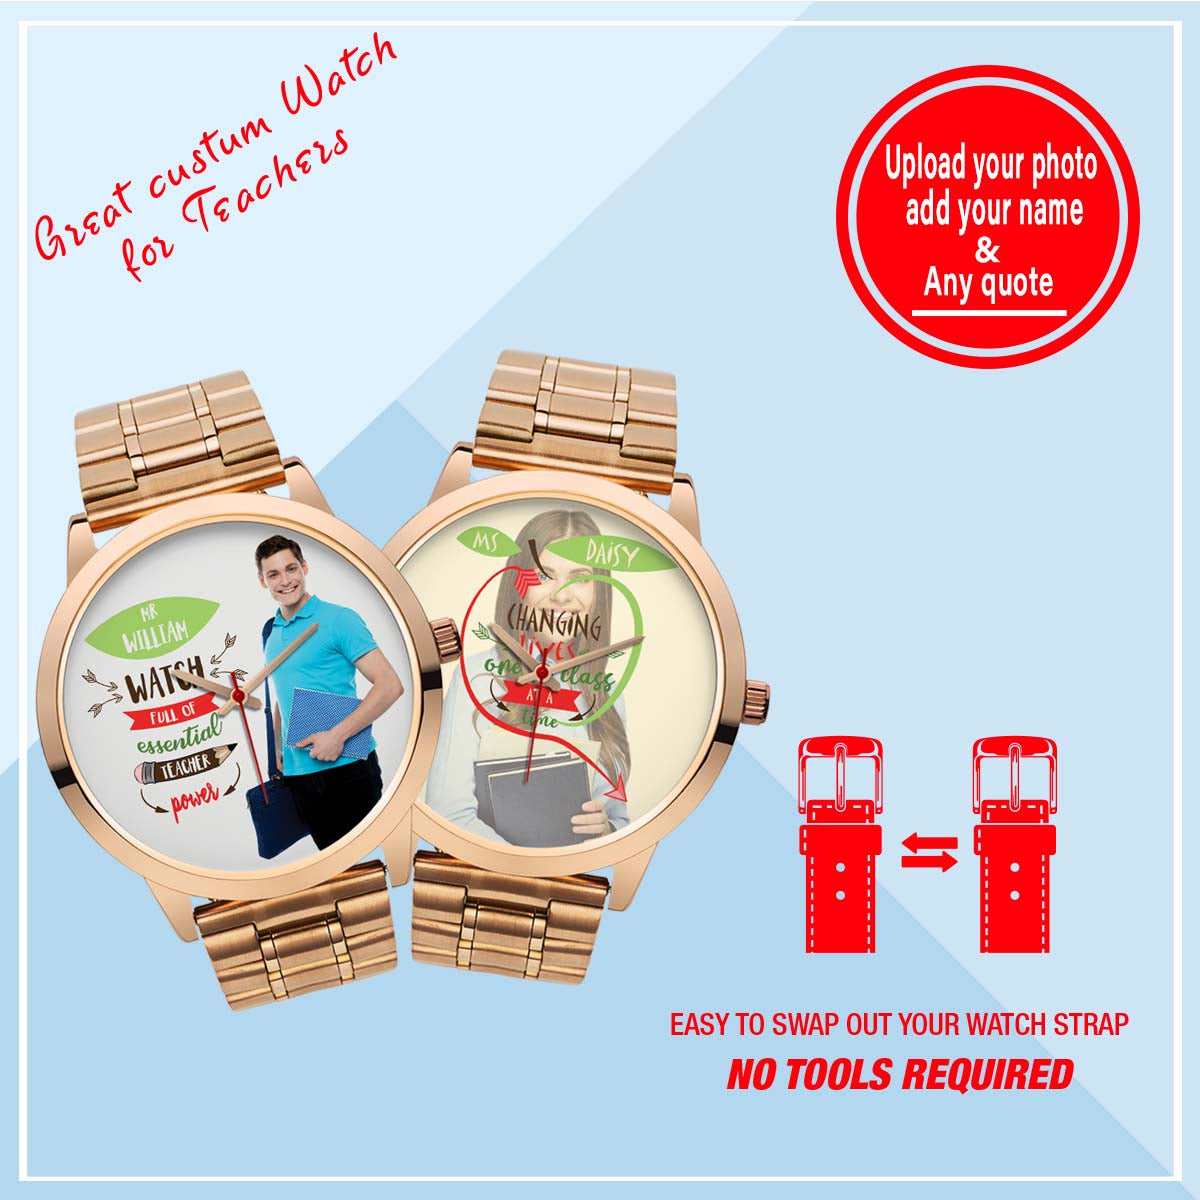 PERSONALIZED WATCH - CUSTOMIZE YOUR WATCH WITH YOUR PHOTO & YOUR QUOTE